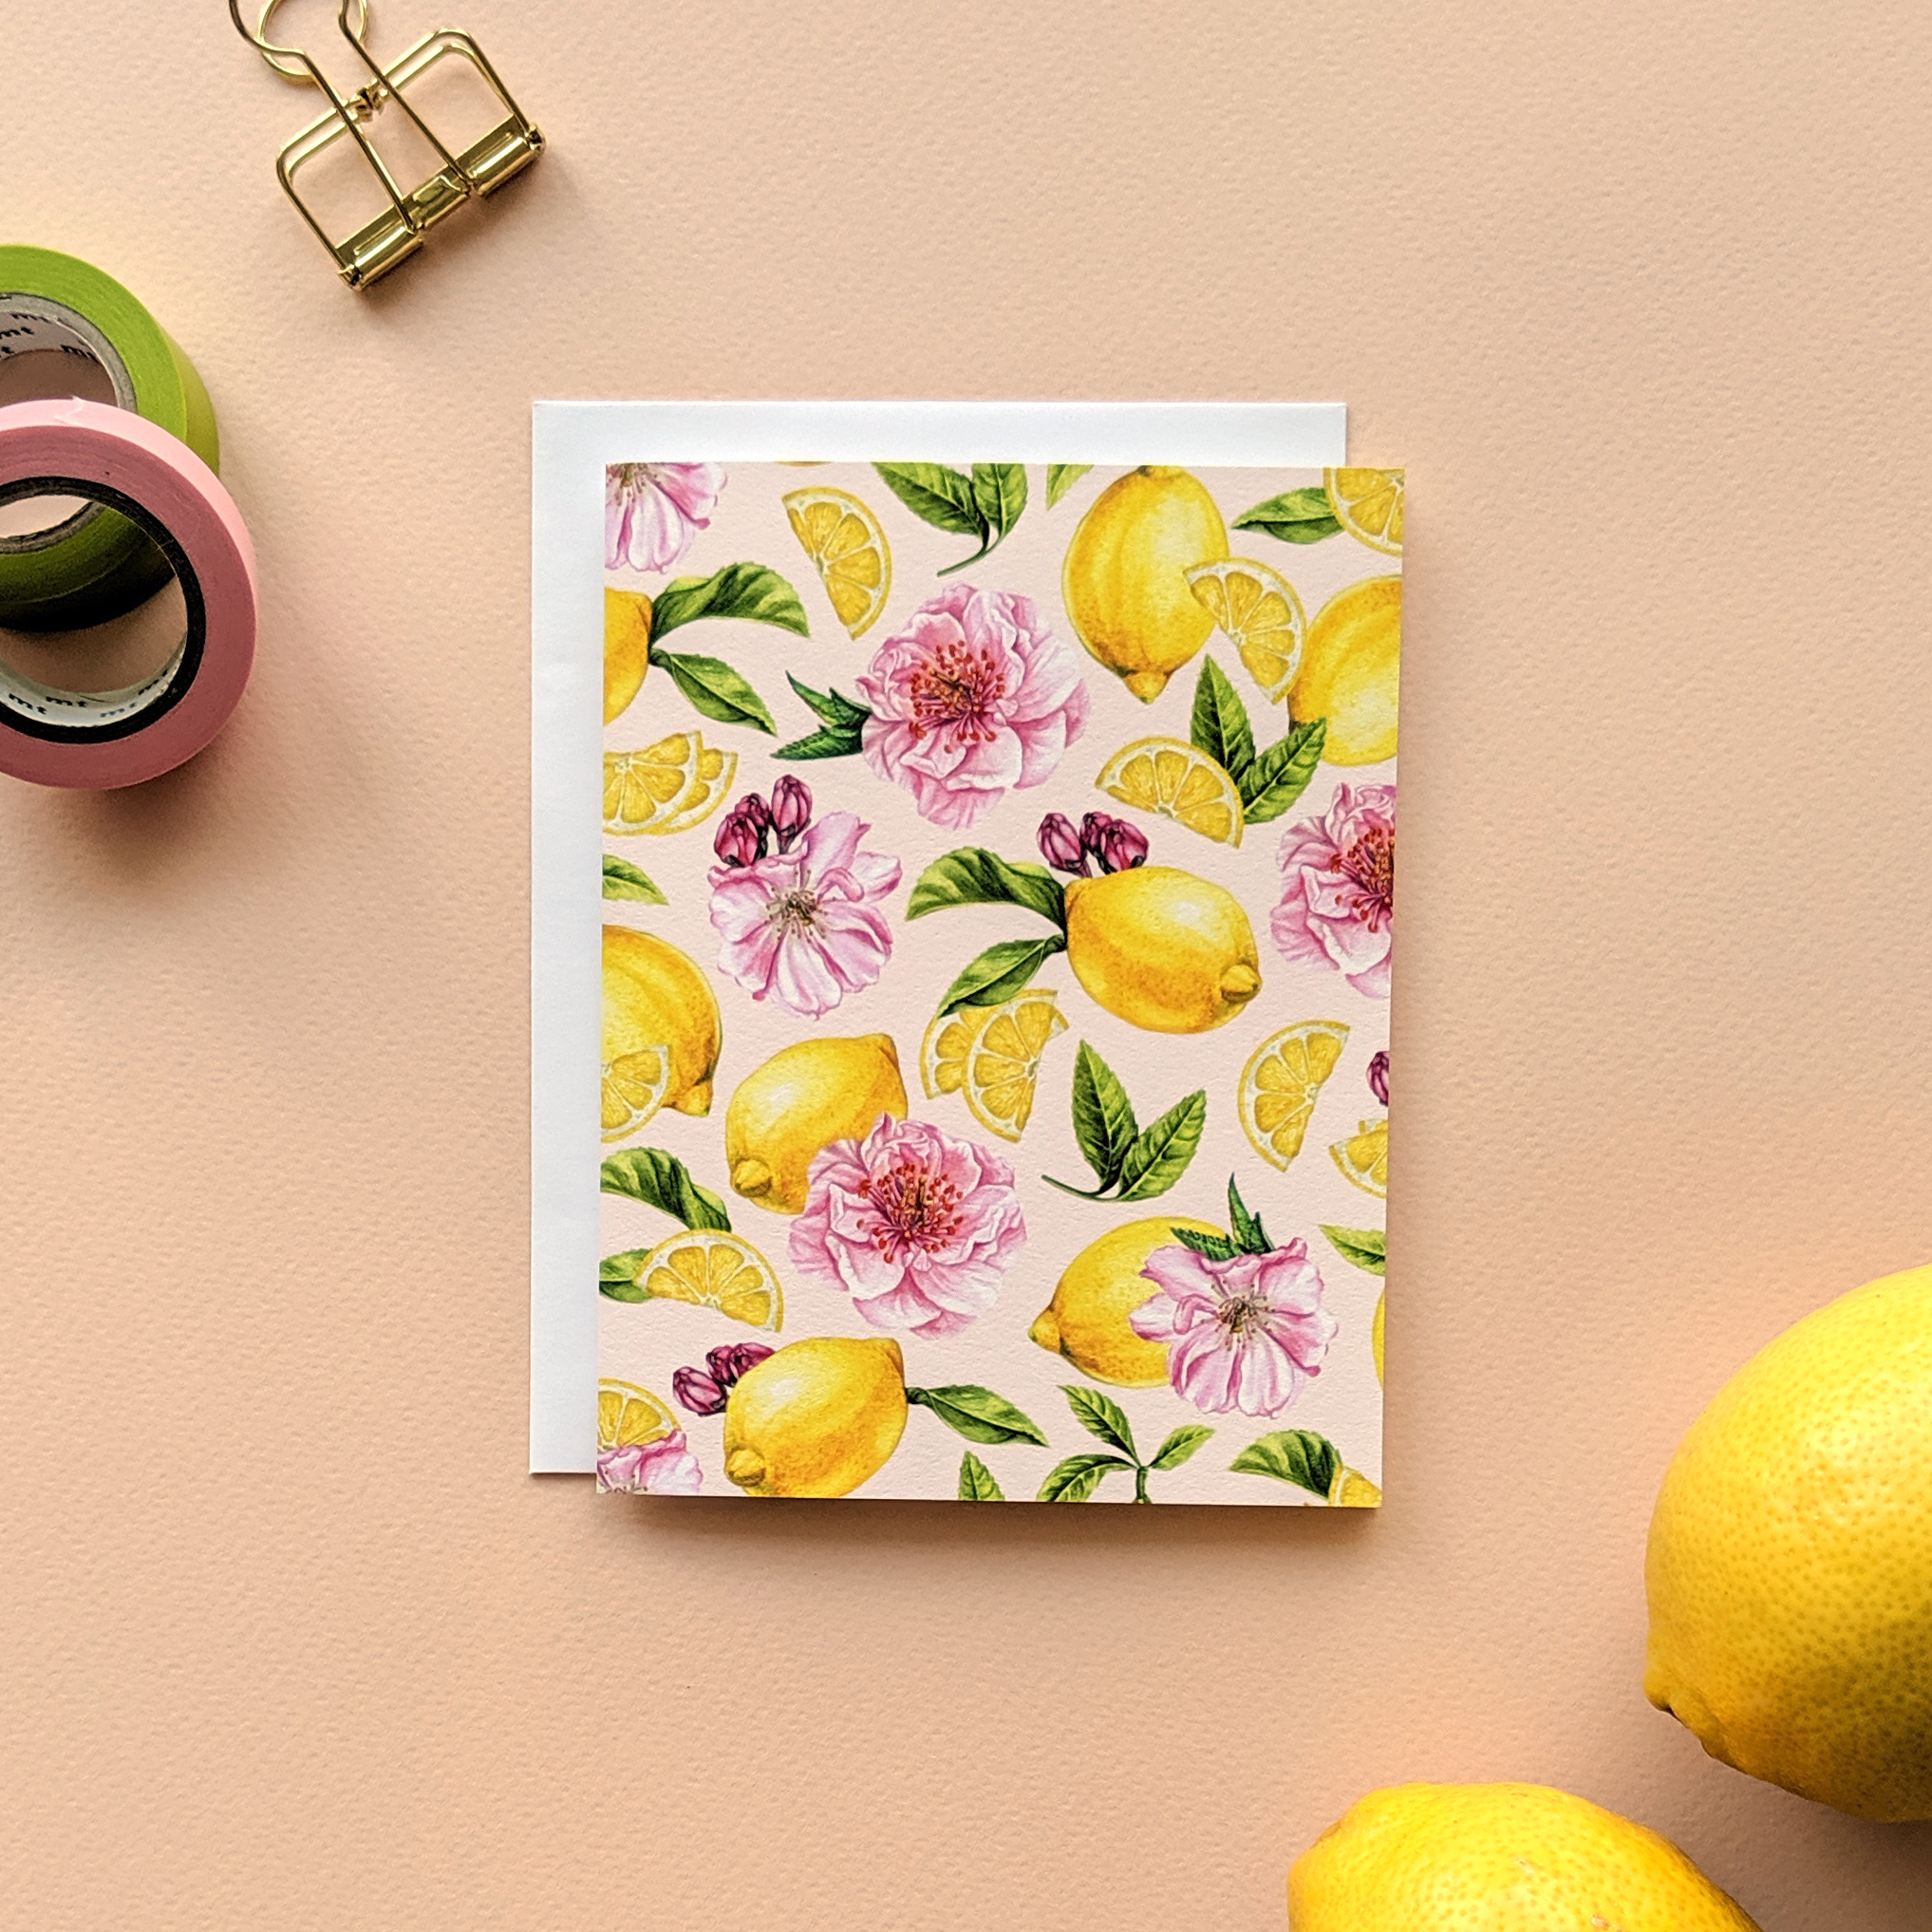 JosianneDufour_licensing_illustration_greetingcard_lemon_flower.jpg